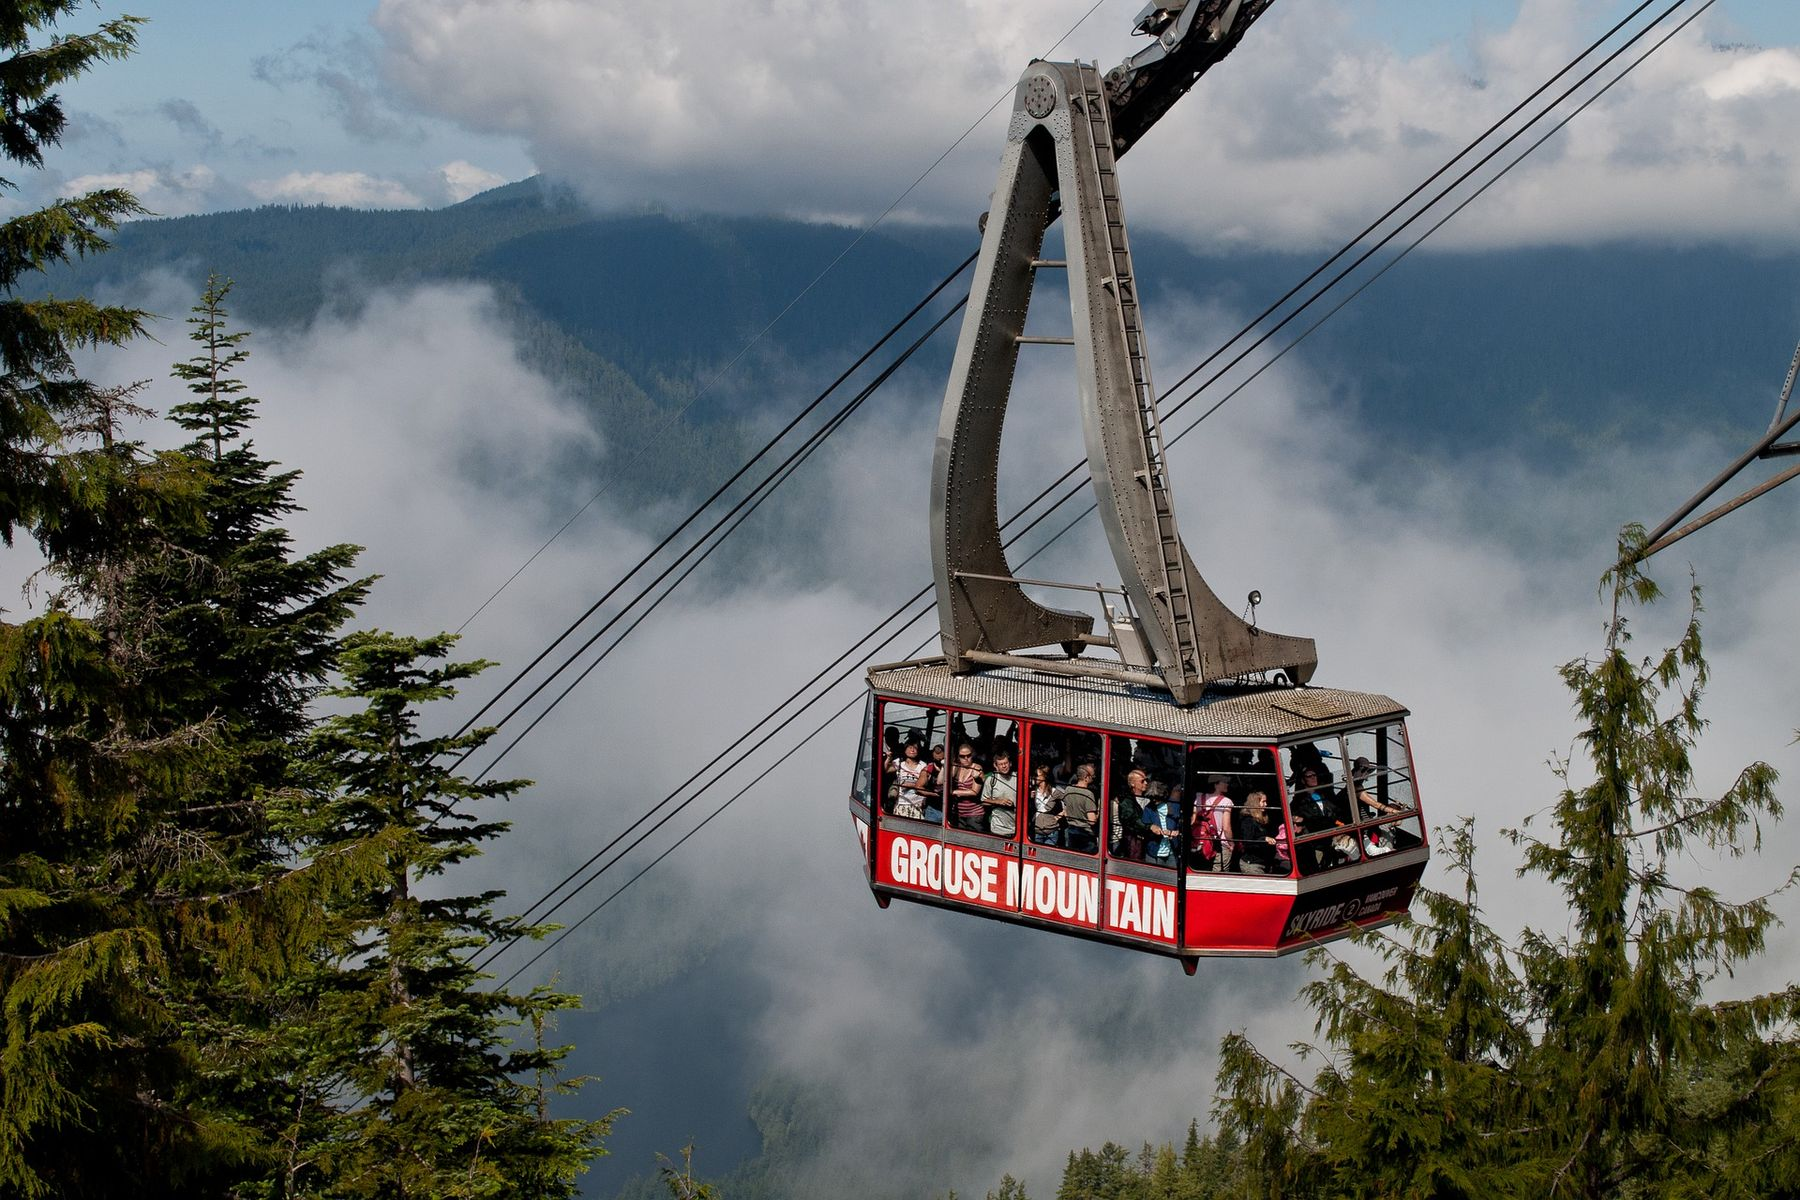 Hiking in Vancouver A picture of the Grouse Mountain gondola with trees and low clouds